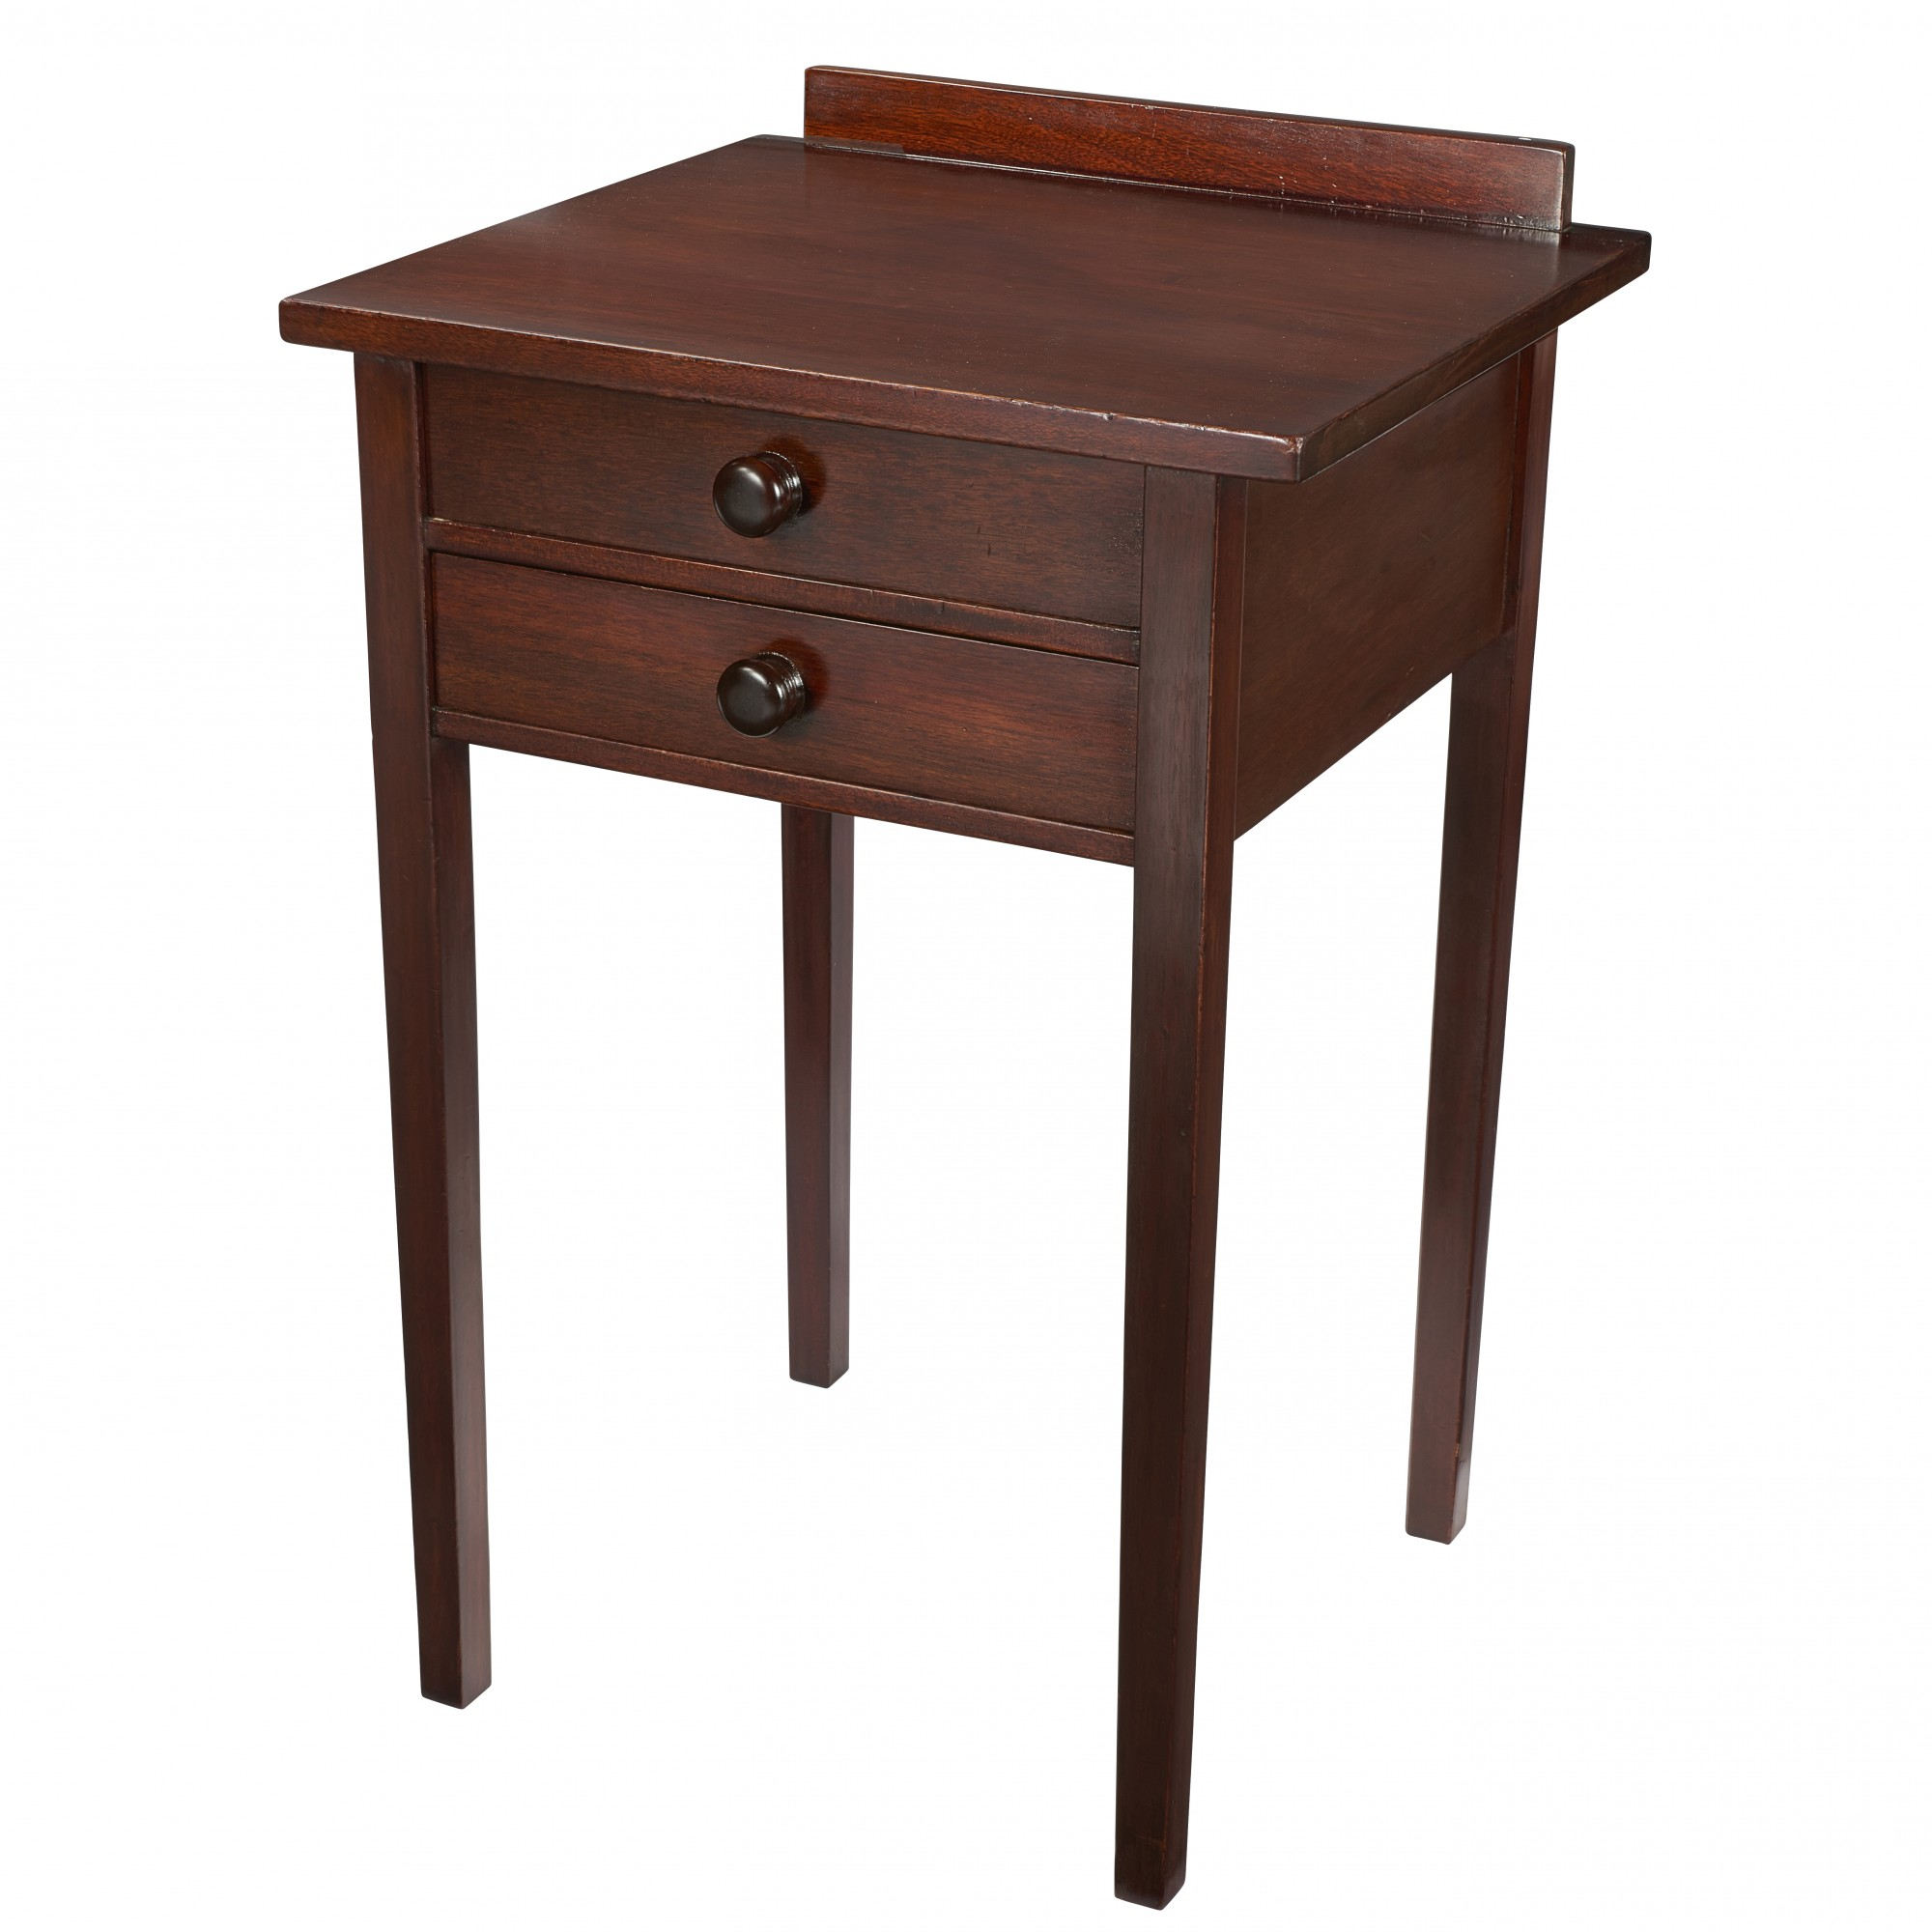 Gustav Stickley Two-Drawer Table